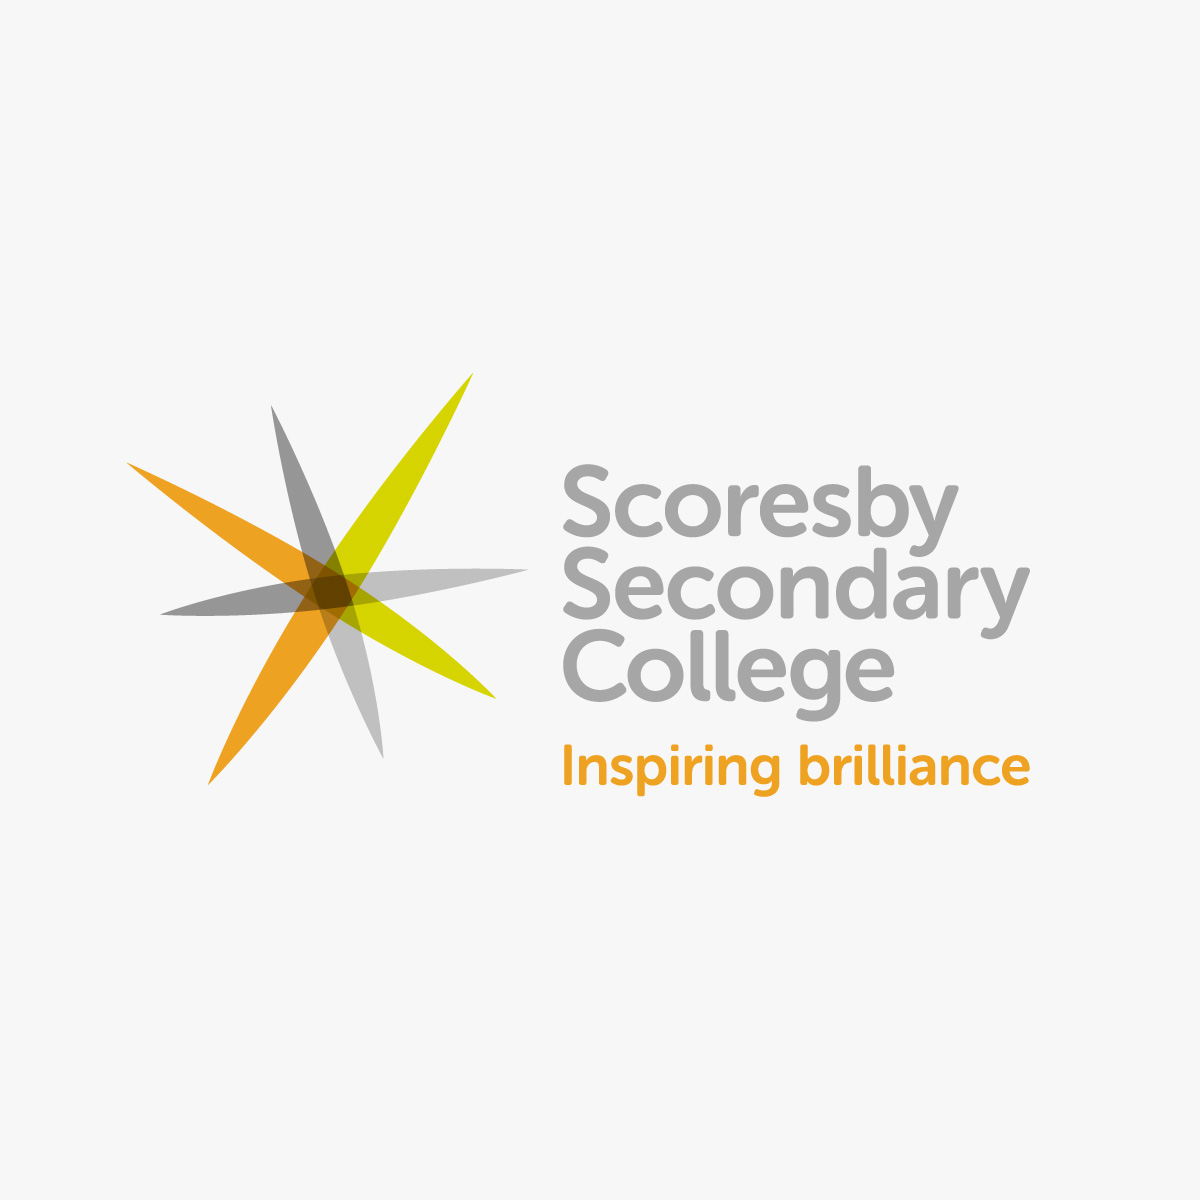 Scoresby Secondary College Brand Identity